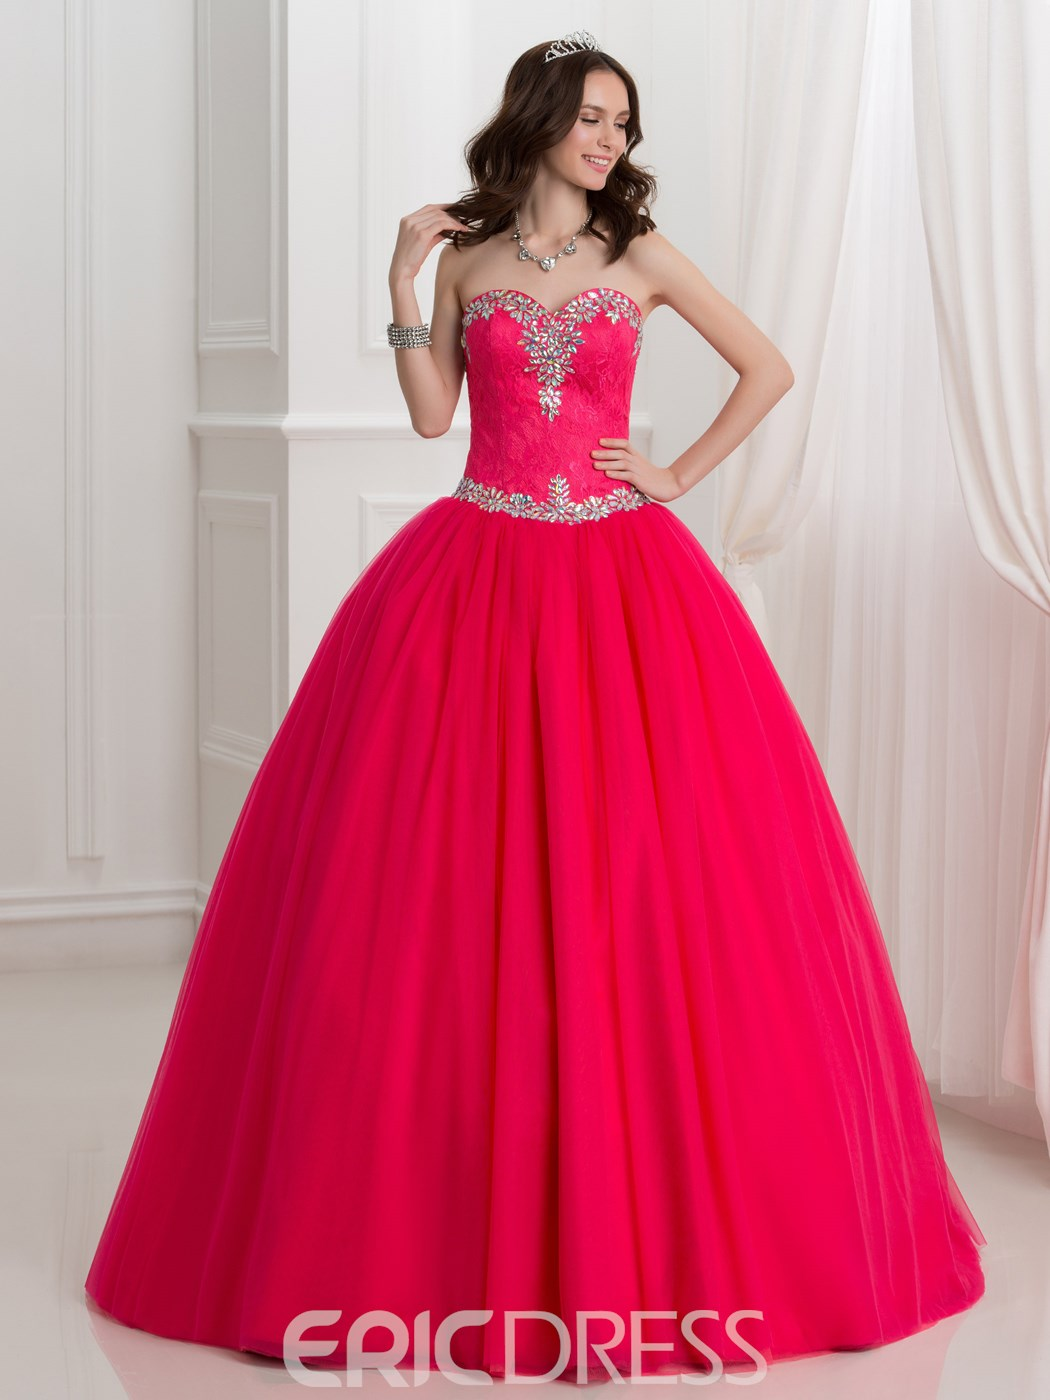 Ericdress Sweetheart Beading Lace Ball Gown Quinceanera Dress